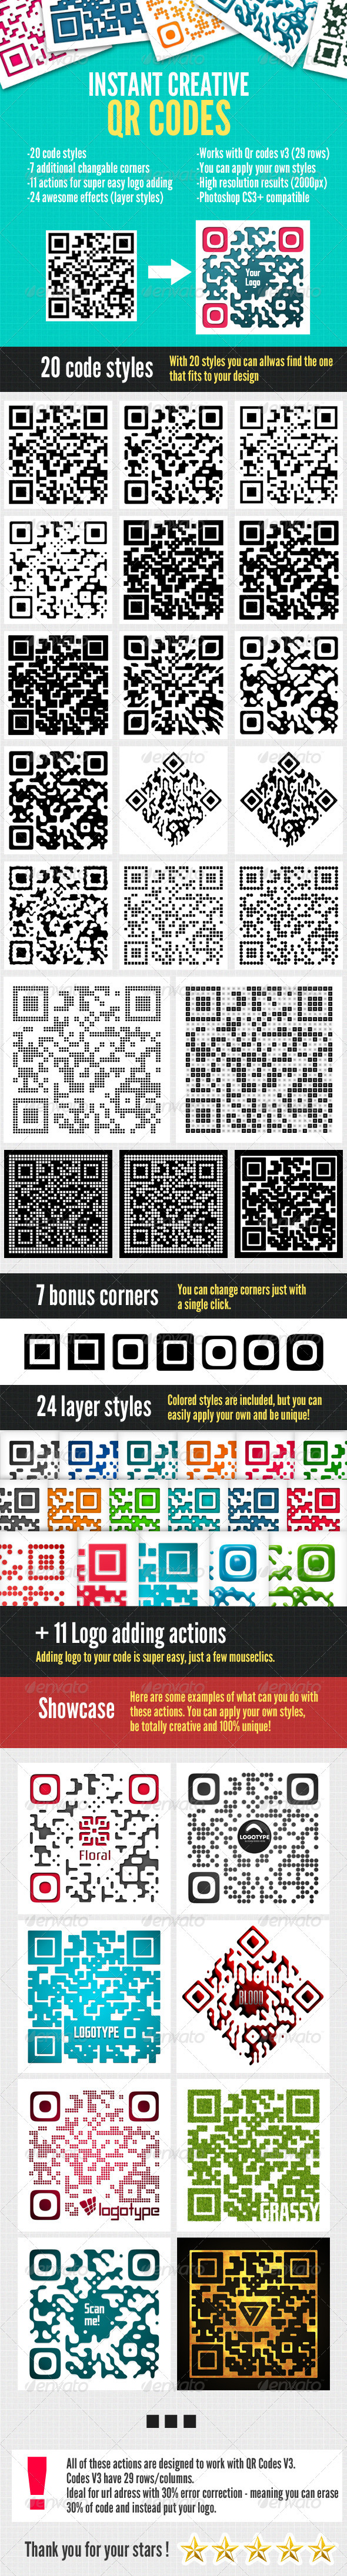 Instant QR Code Designs - Photoshop Actions - Utilities Actions